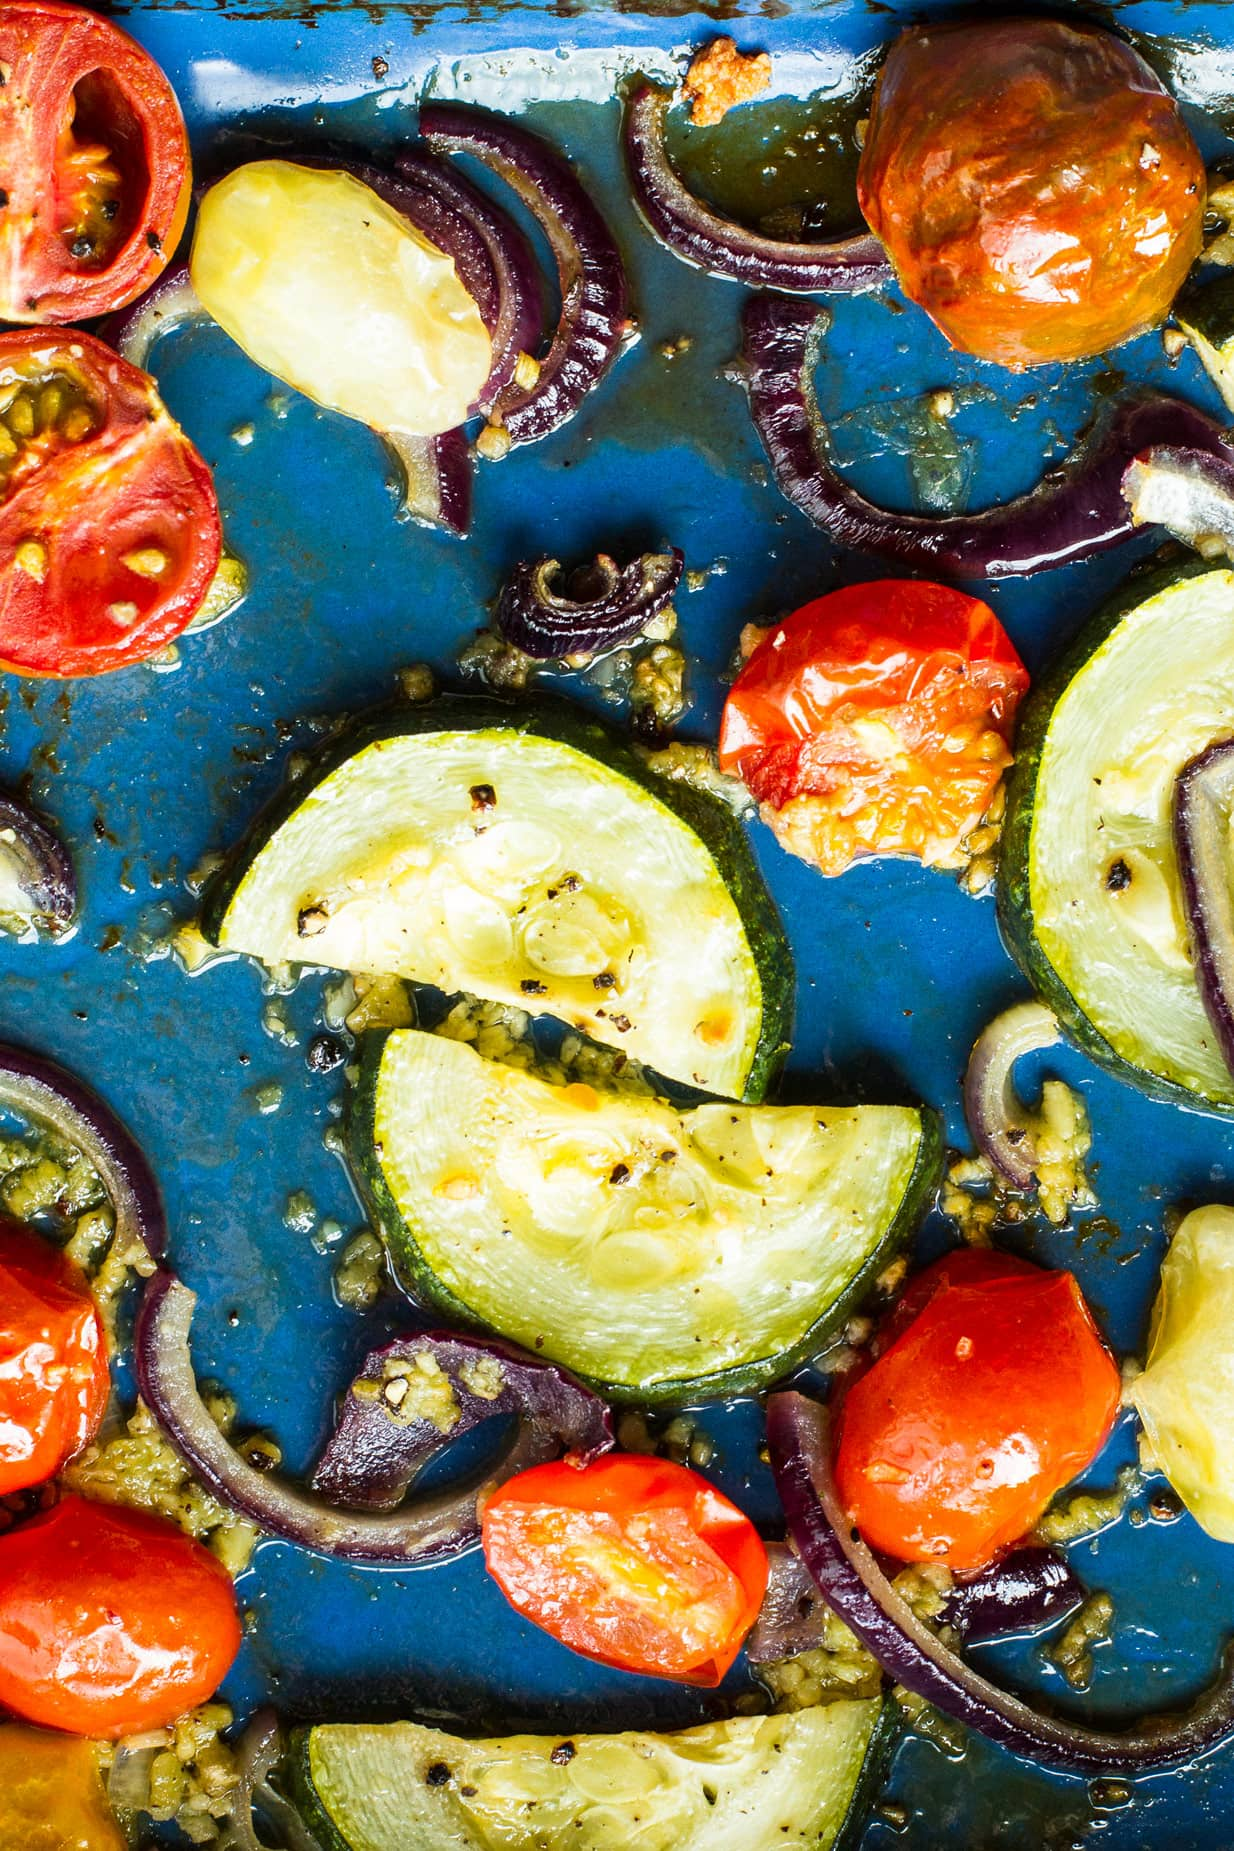 Garlic roasted tomatoes, zucchini slices and red onion in a blue pan.